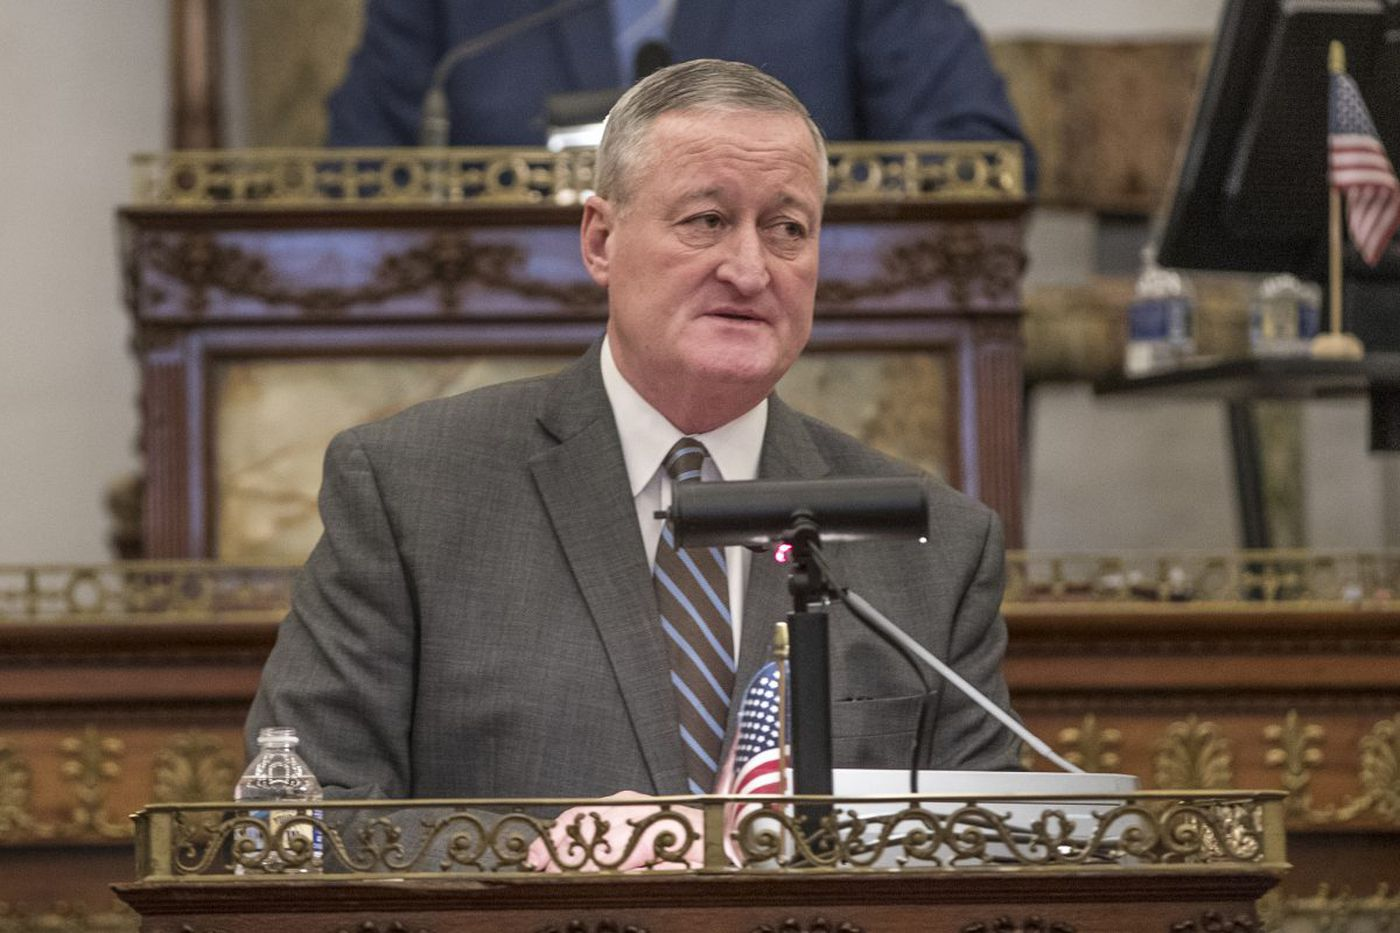 If Mayor Kenney's budget passes, Philly spending will have risen $600 million in three years